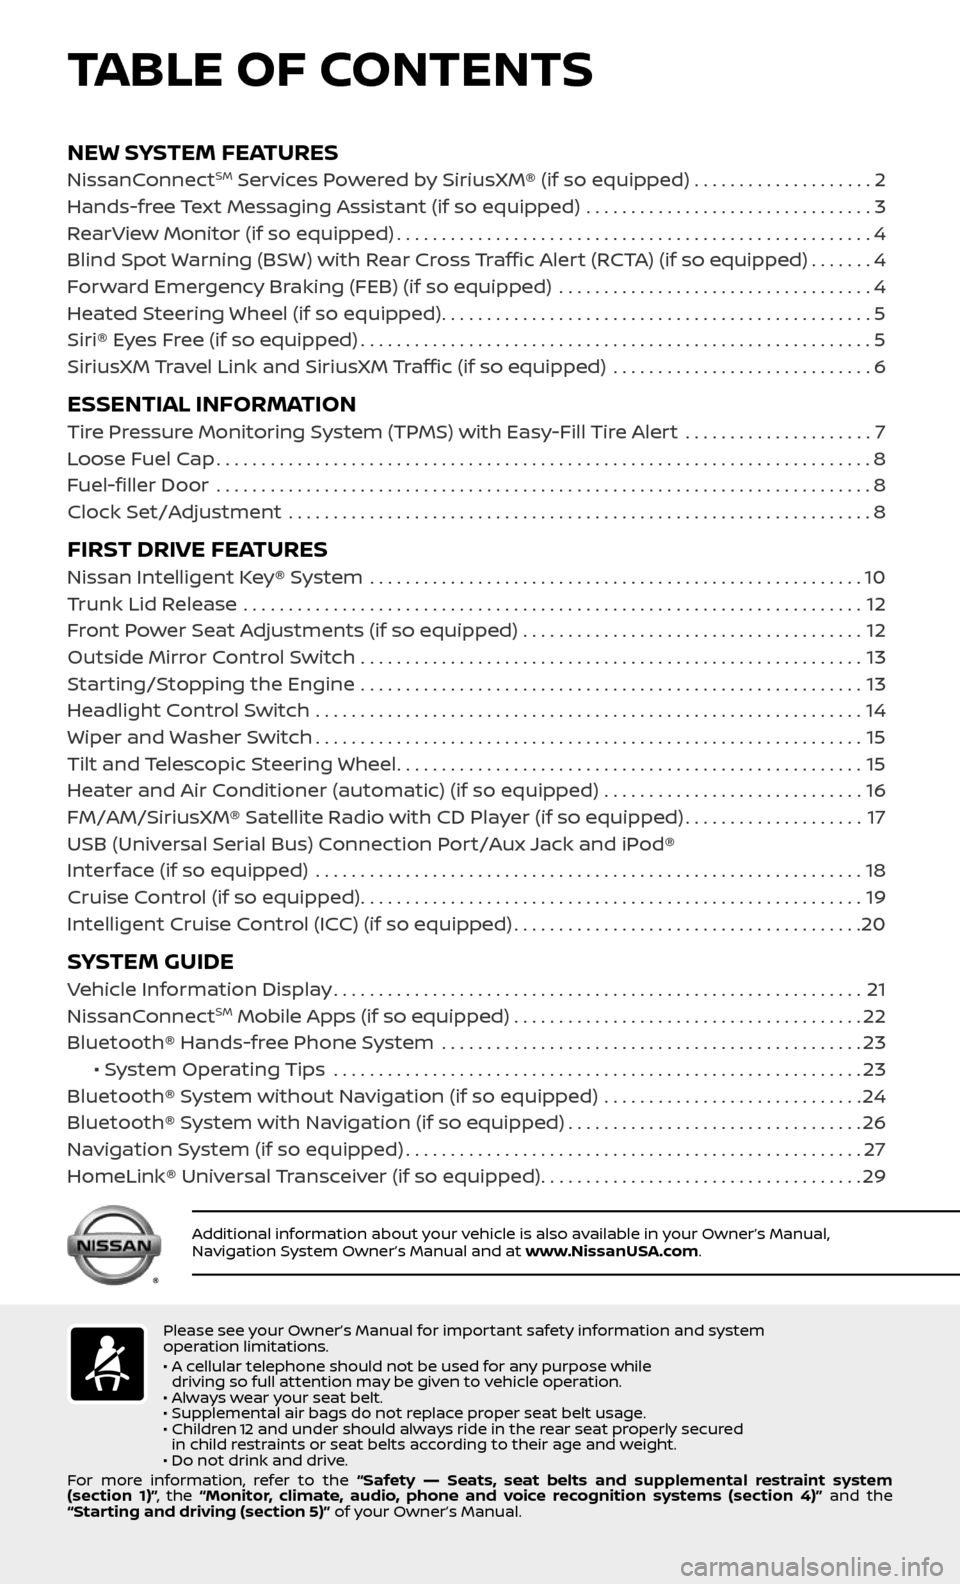 NISSAN ALTIMA 2017 L33 / 5.G Quick Reference Guide, Page 3